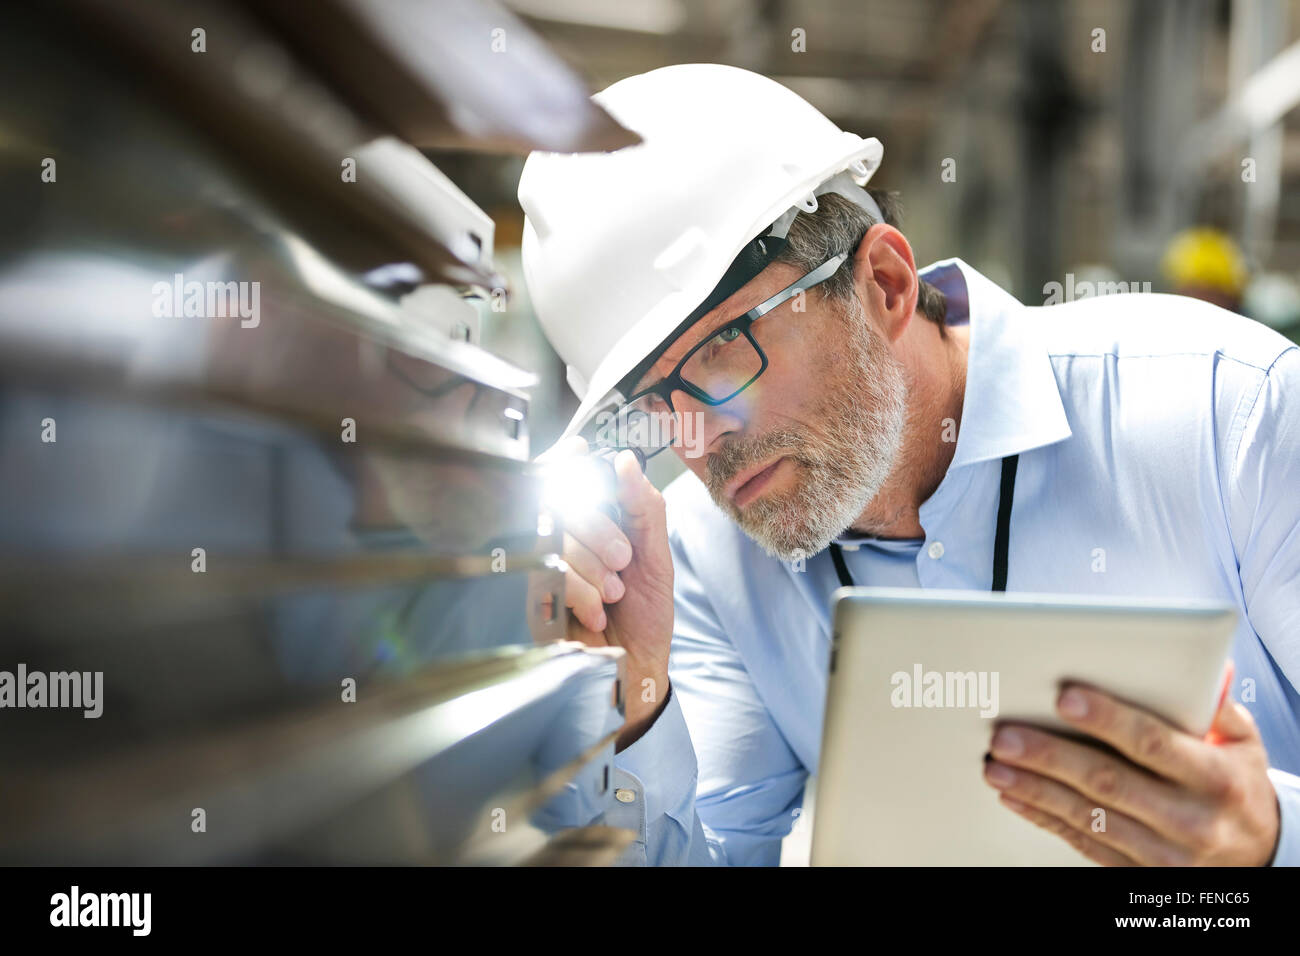 Focused engineer with digital tablet and flashlight examining part in factory - Stock Image